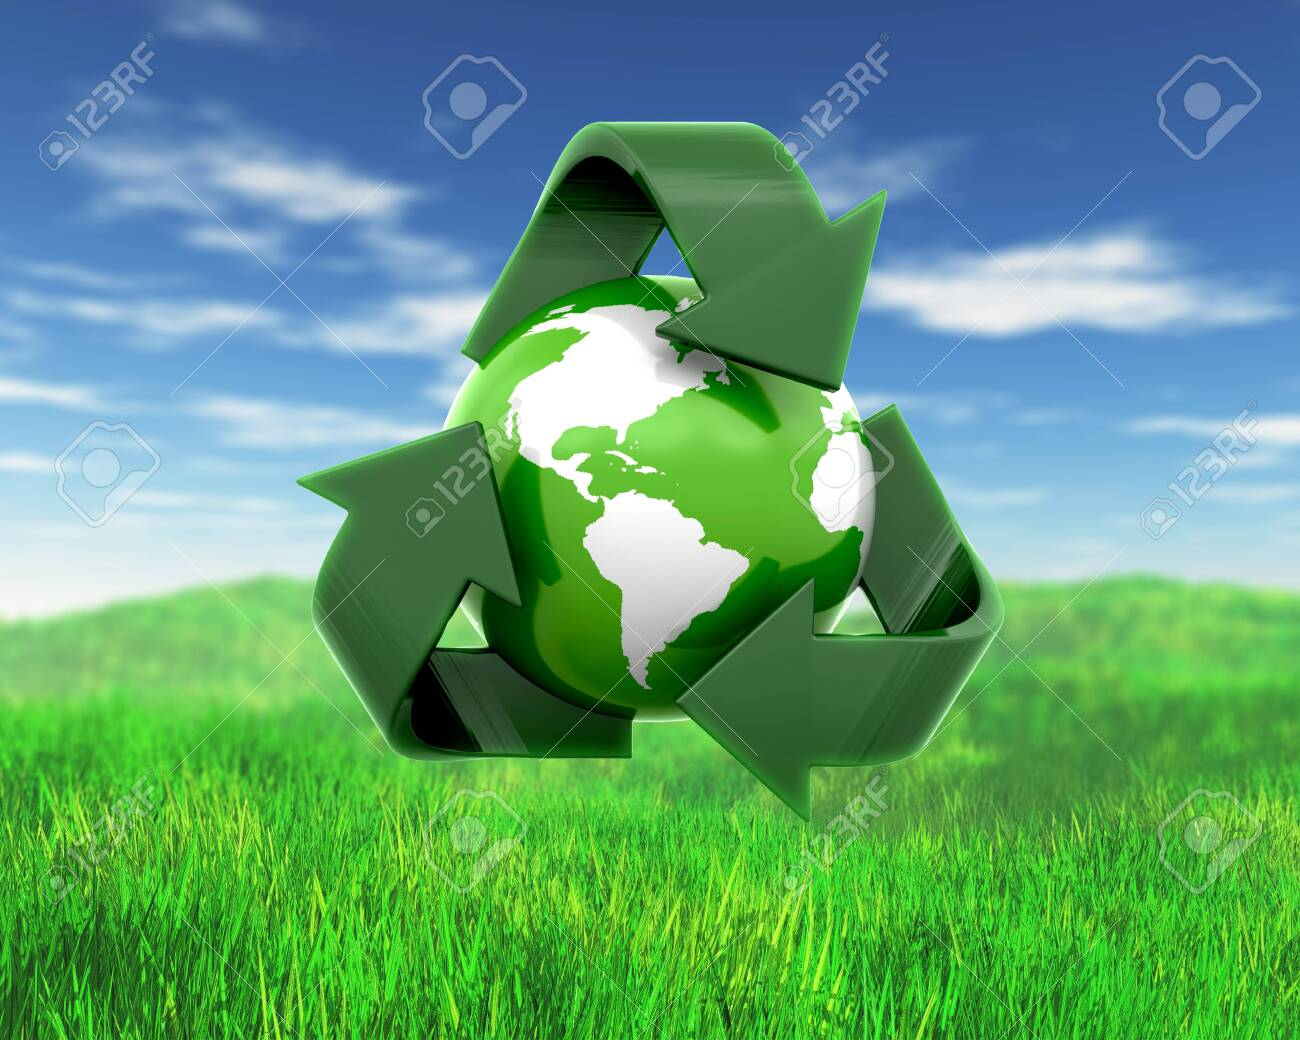 3D render of a globe with recycling symbol on grass and sky landscape - 140620401